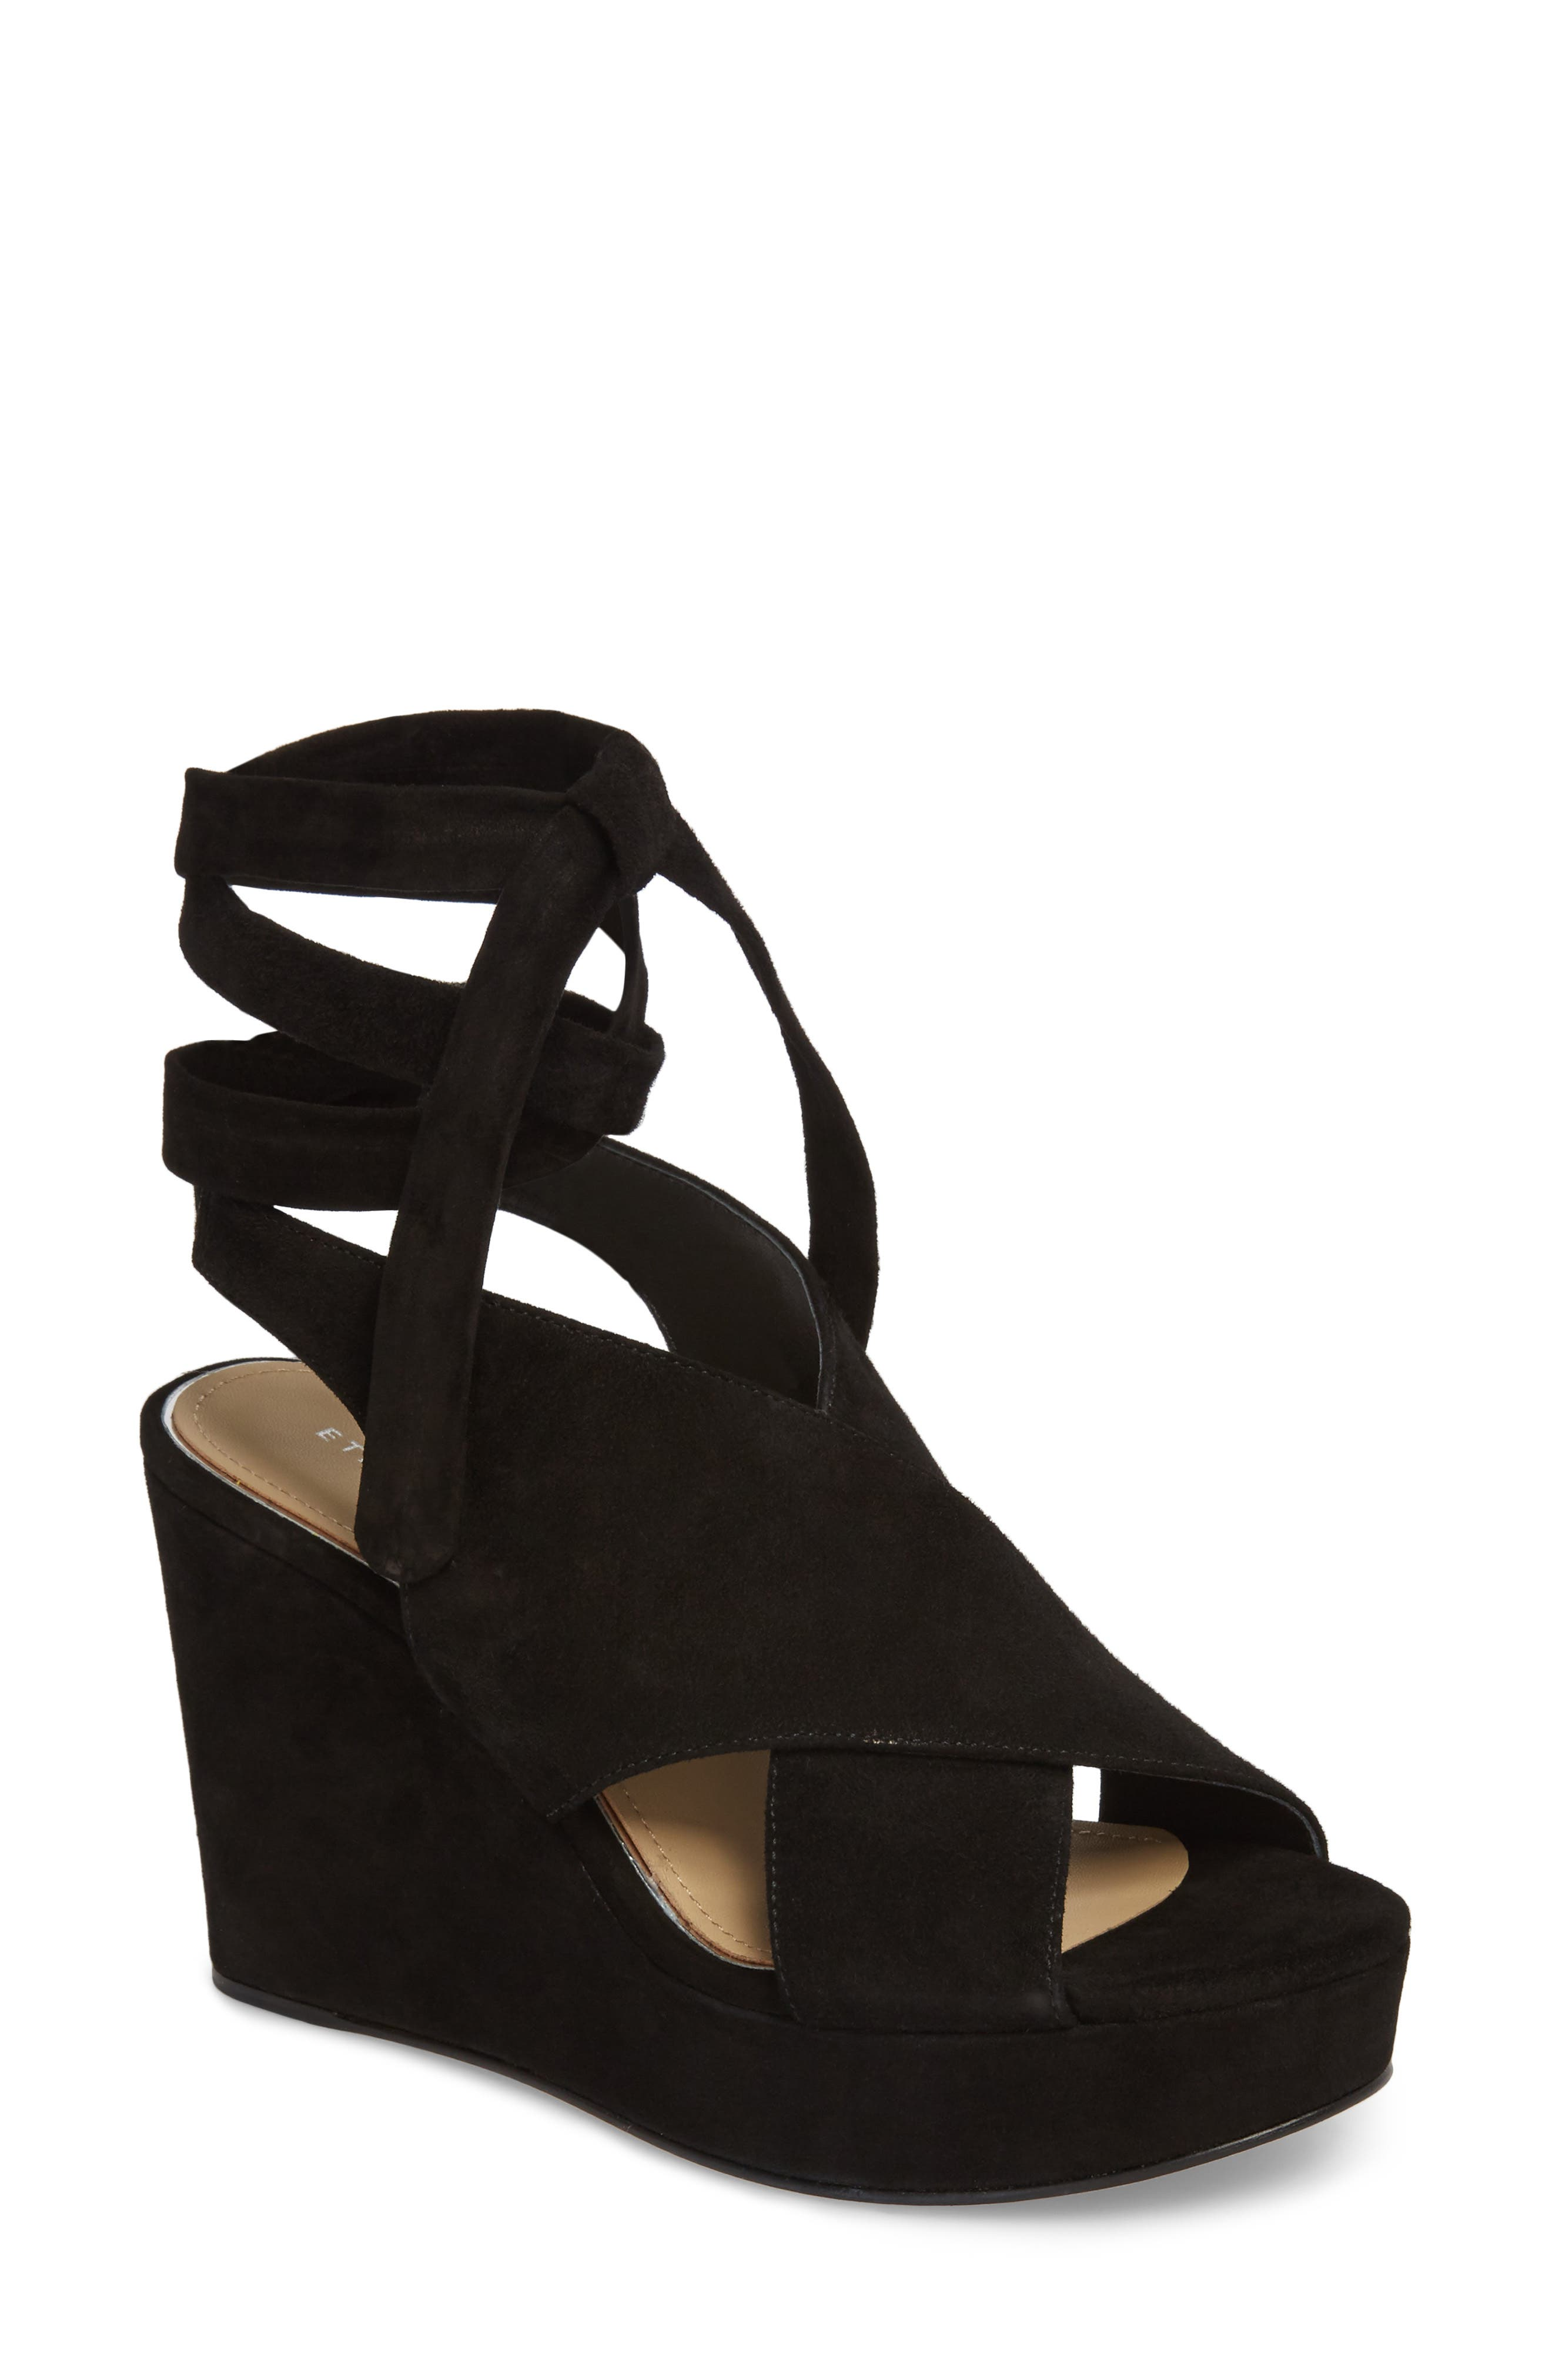 Dominica Platform Wedge Sandal,                         Main,                         color, BLACK SUEDE